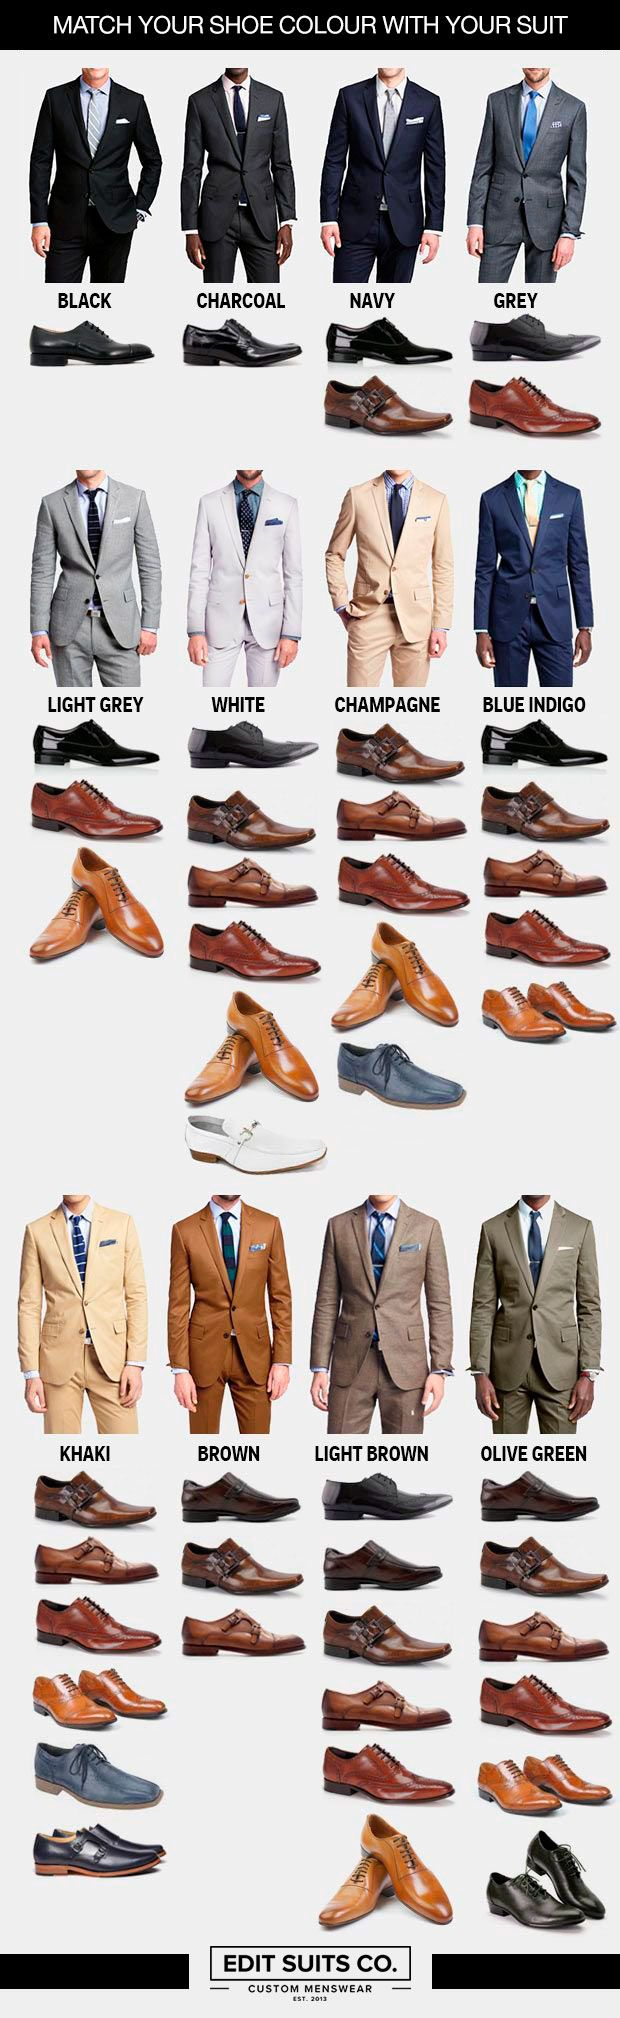 Need help choosing the perfect pair of shoes for every colour of suit?